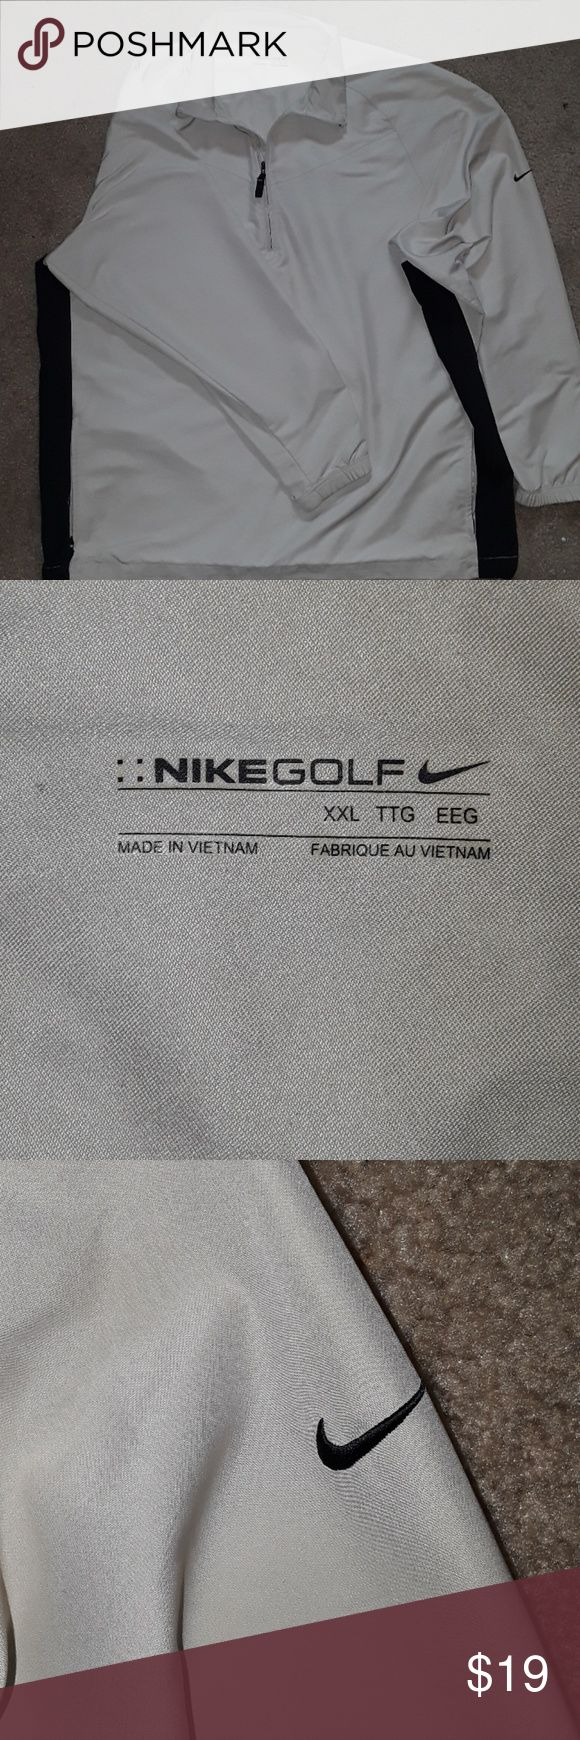 Nike Golf Jacket Tan with black stripe under arm.  Quarter zip with zipper pockets.  Adjustable waistband.  Great condition no stains, flaws or rips, just too big for me. Nike Jackets & Coats